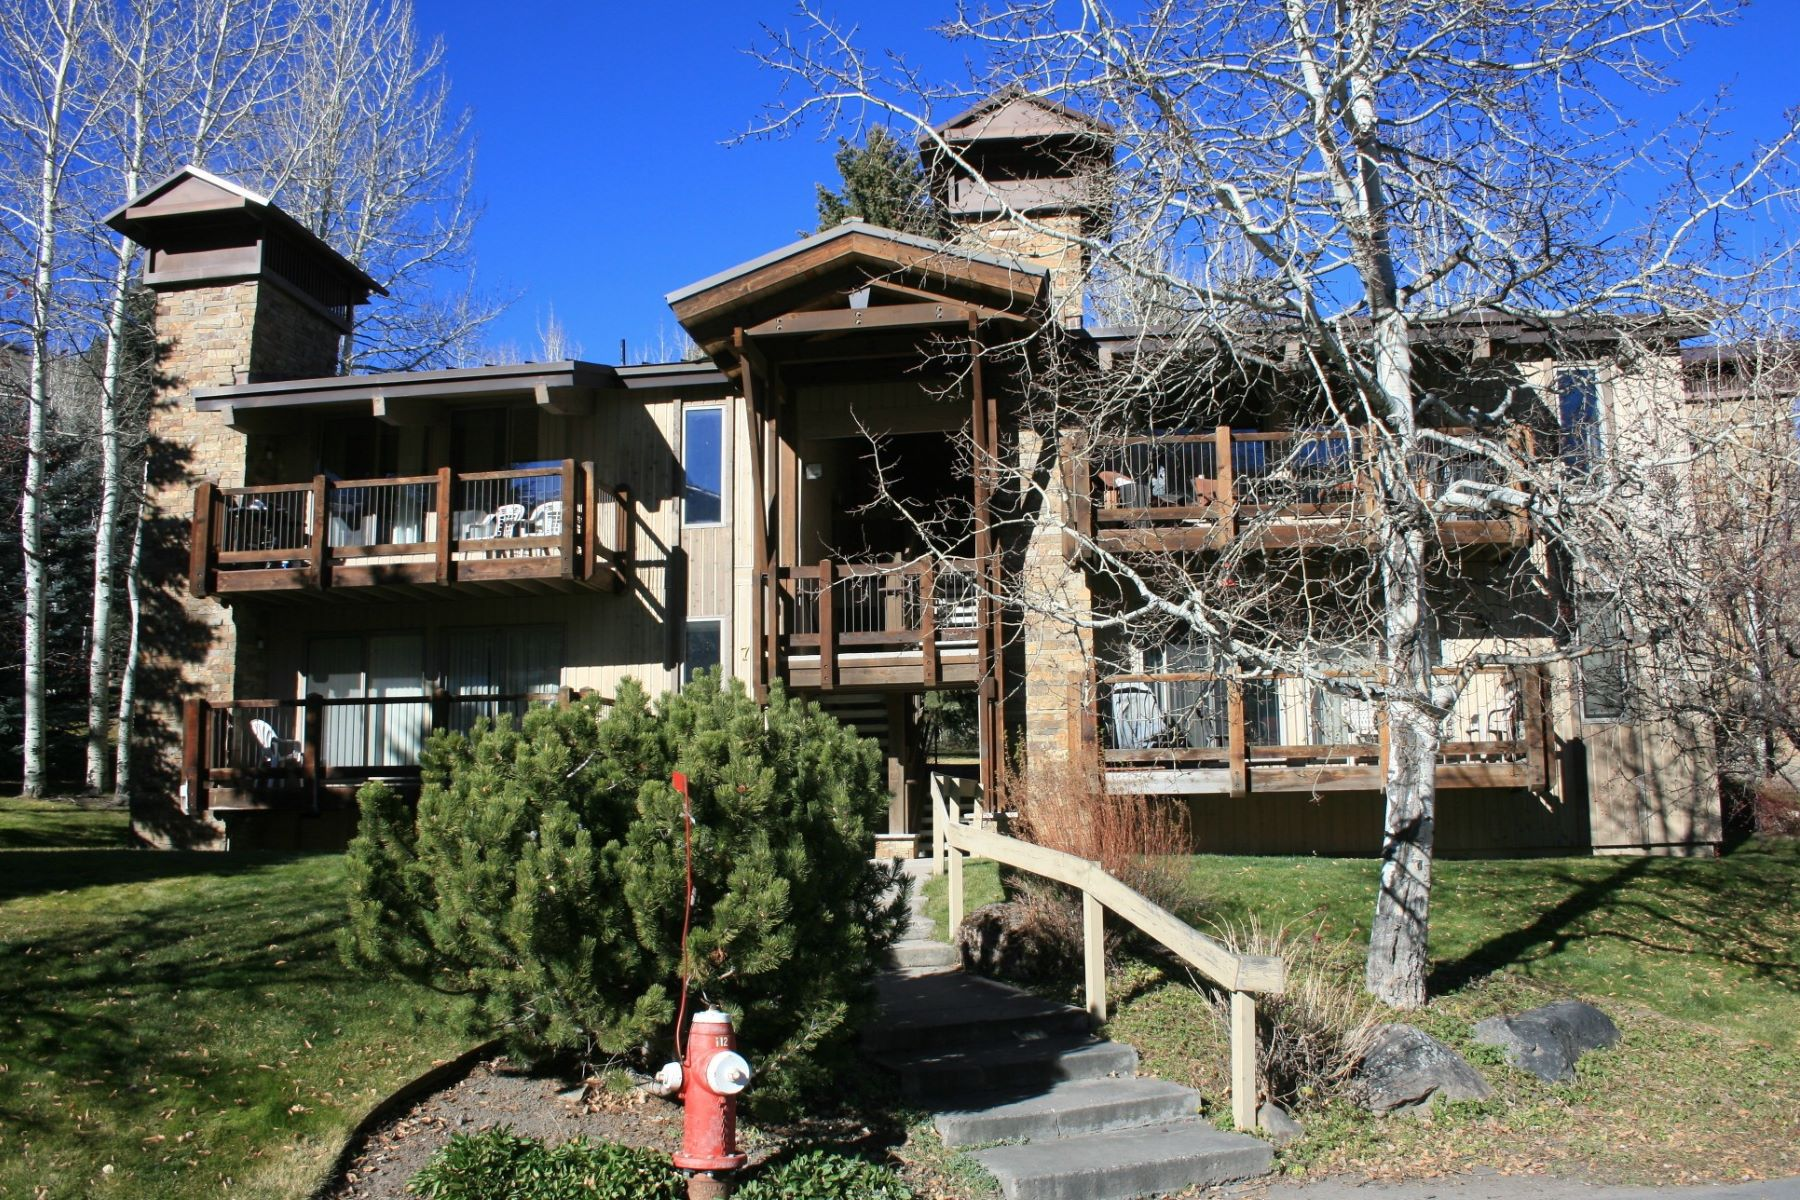 Copropriété pour l Vente à Woodbridge 2 Bedroom with Loft 35 Upper Woodbridge Road Snowmass Village, Colorado, 81615 États-Unis